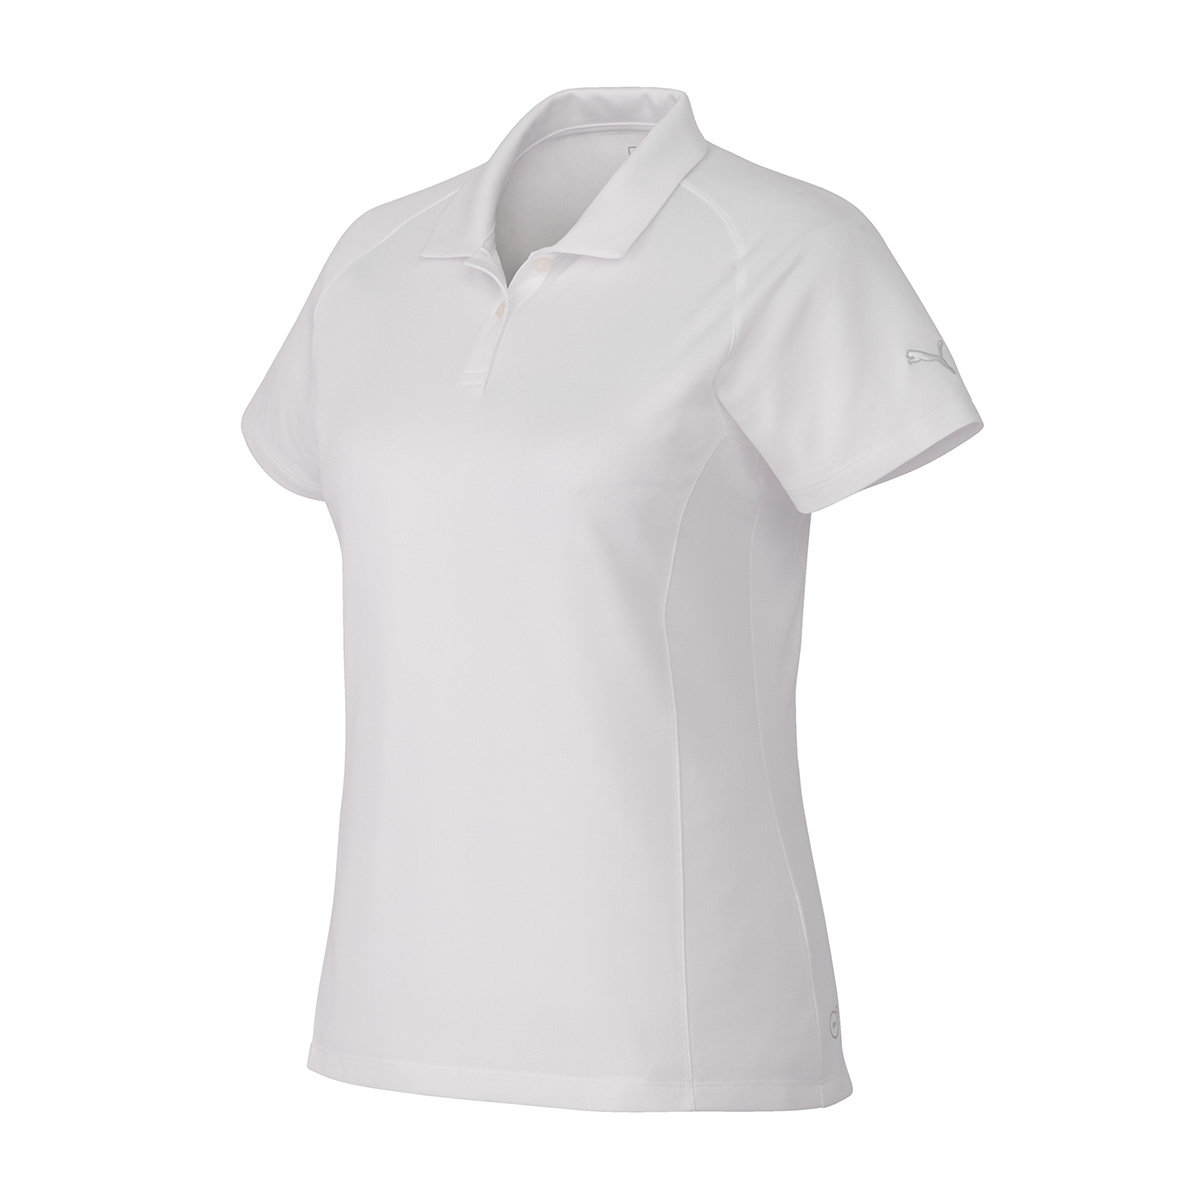 Puma ESS Short Sleeve Women's Polo Shirt, #96816 - Embroidered